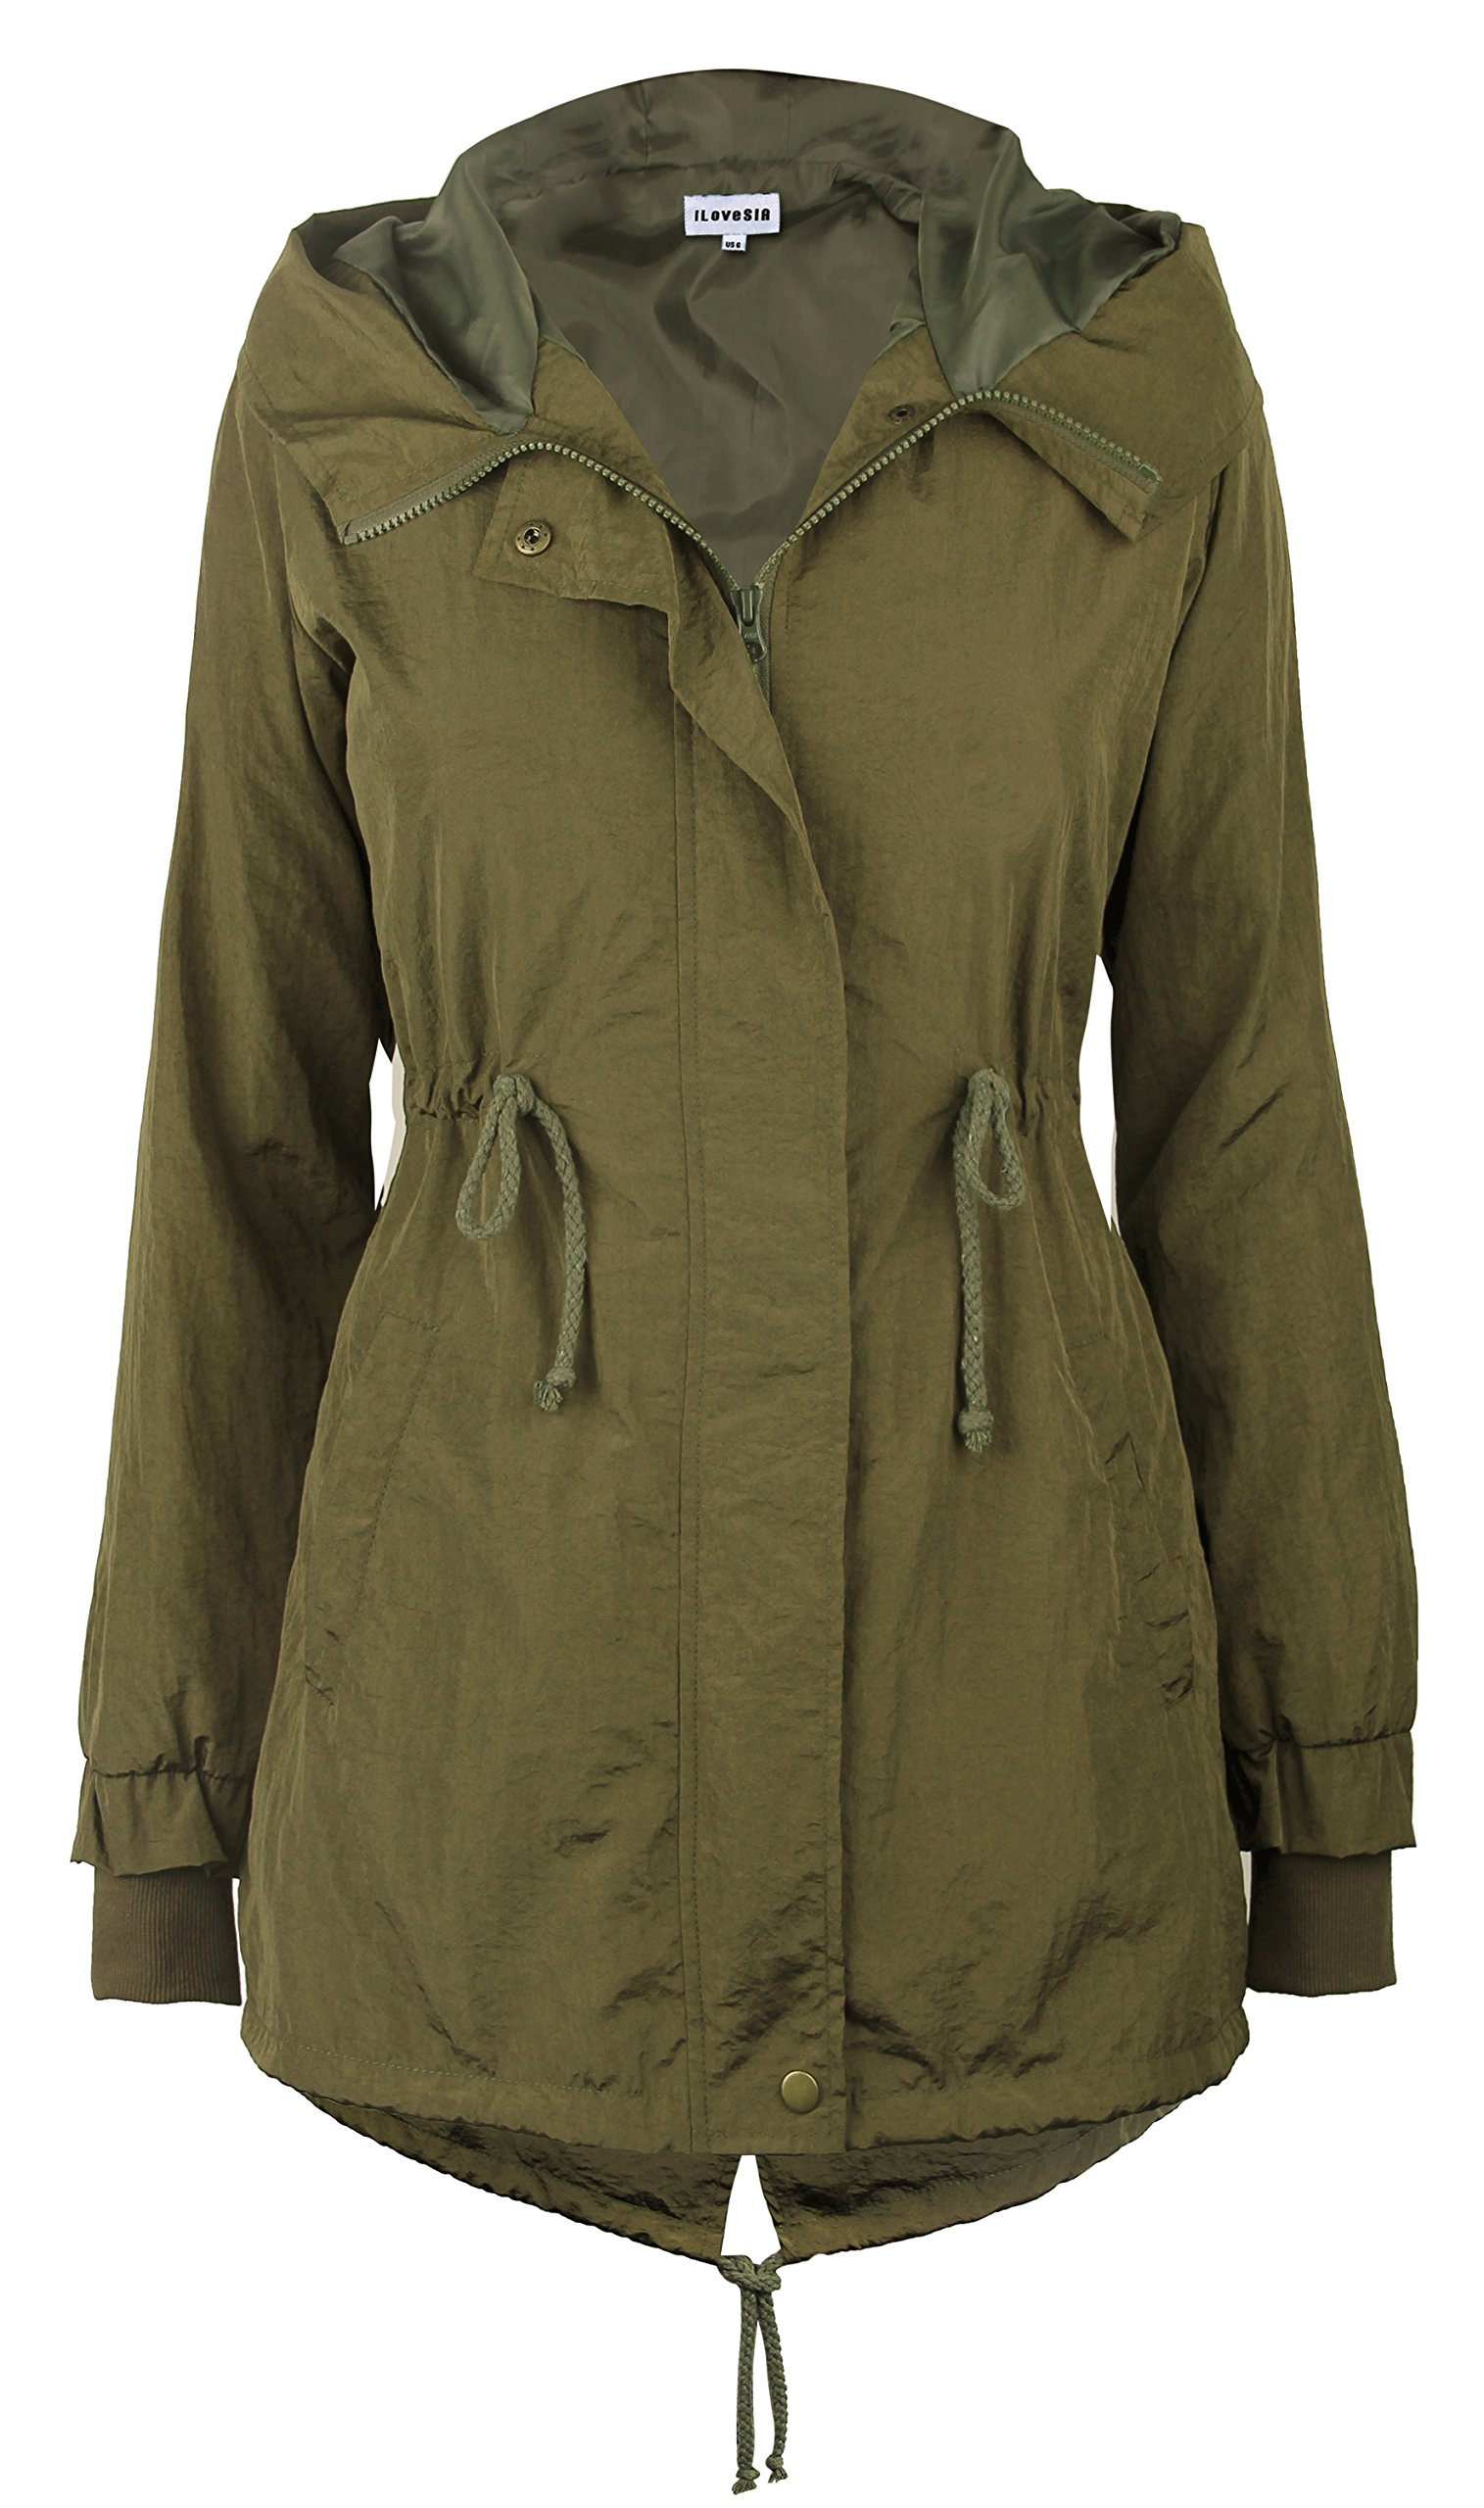 iLoveSIA Women's Military Trench rain Jacket with Hood Jacket Arm Green US 12